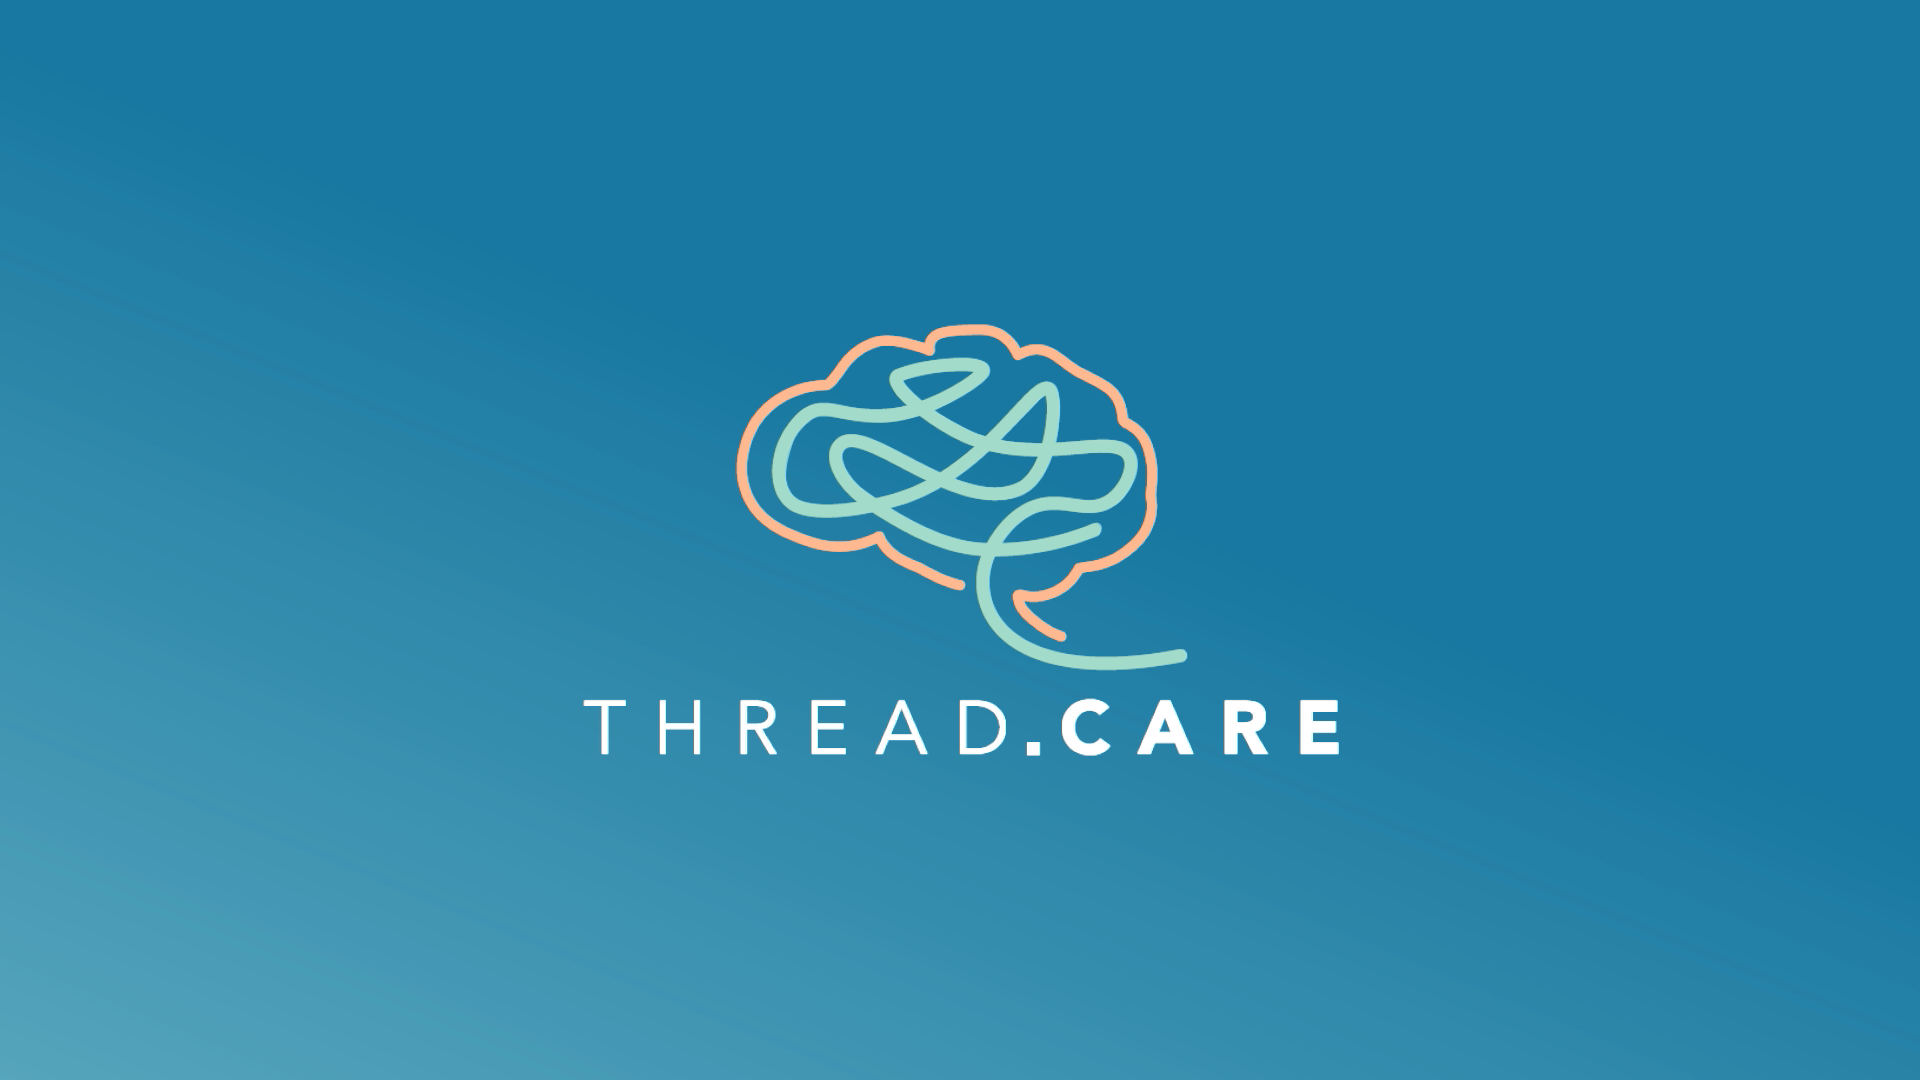 What's Thread.Care About?